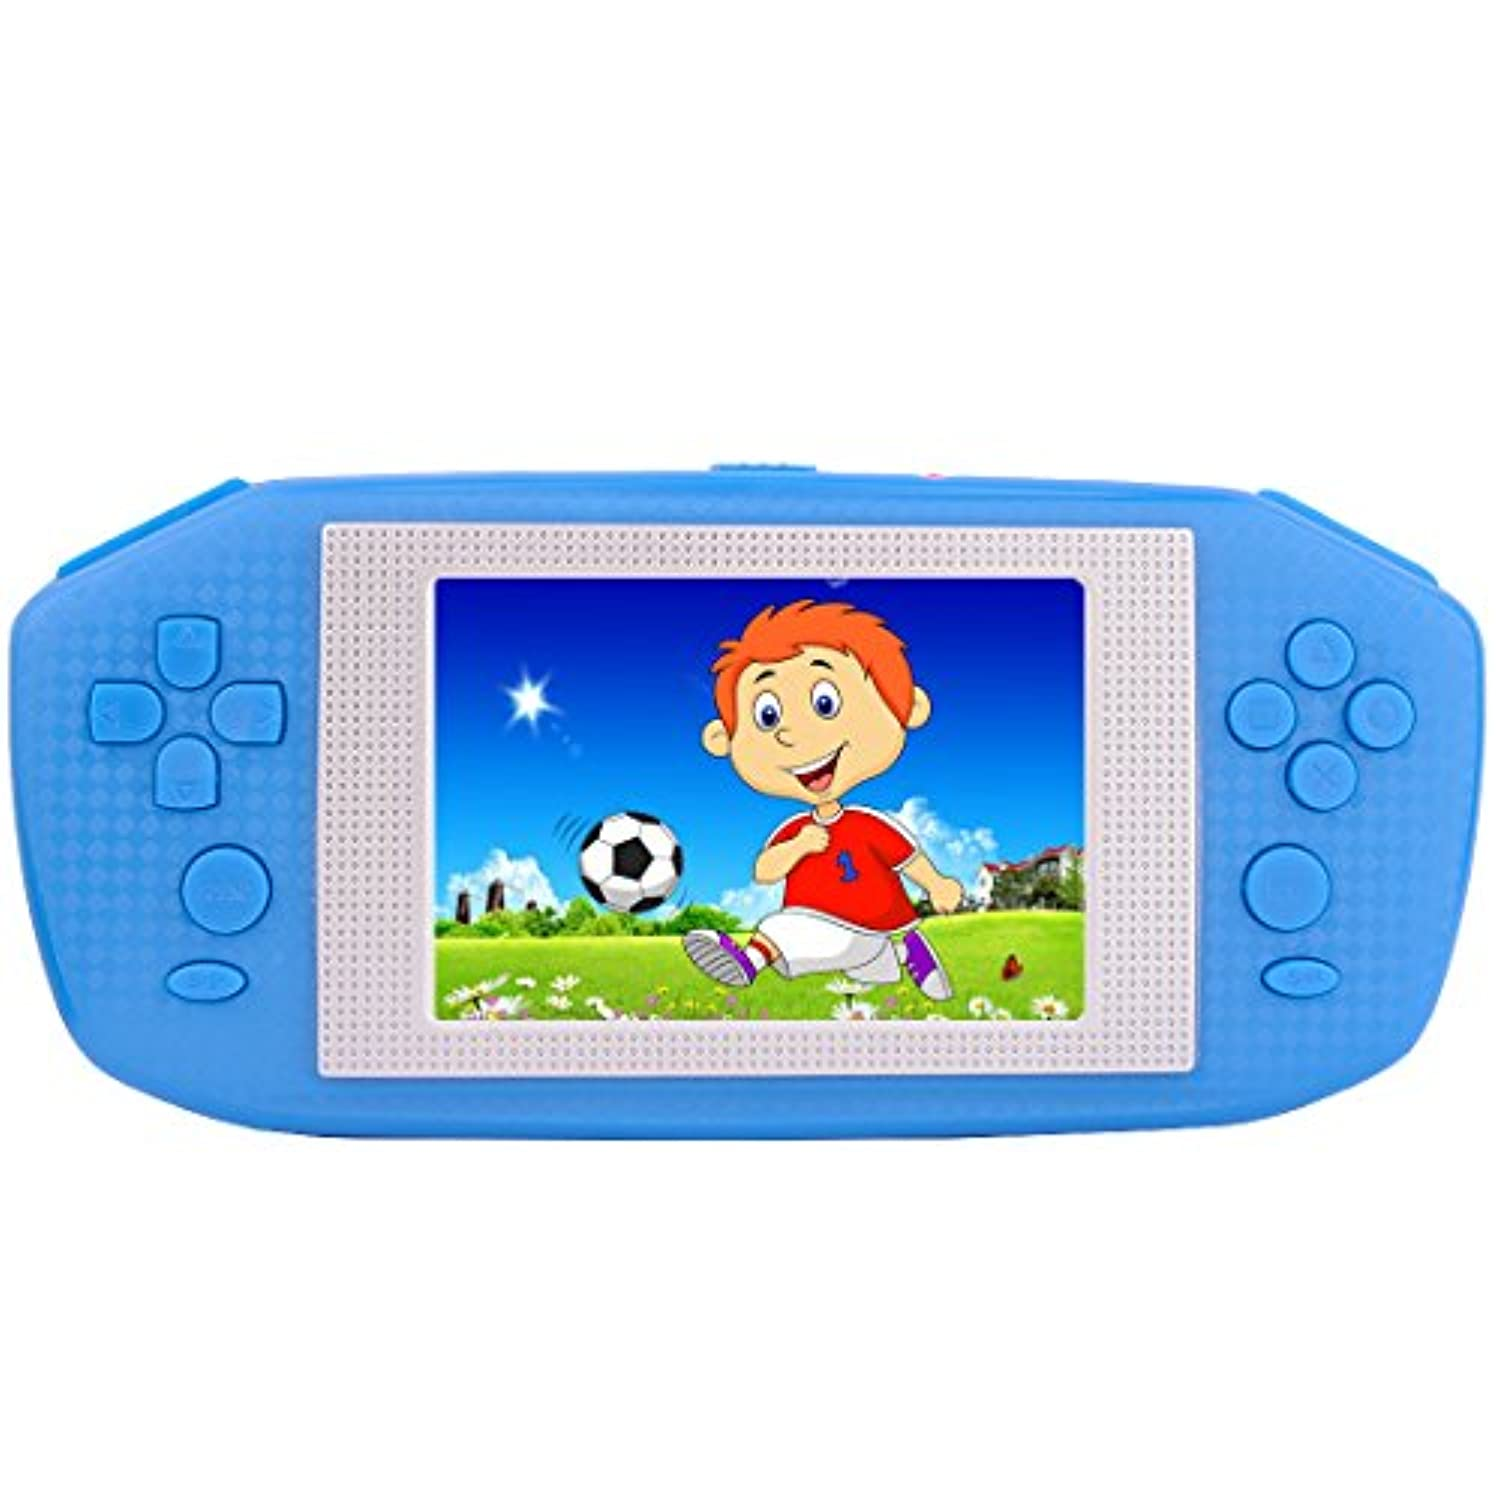 (Blue) - ZHISHAN Portable Handheld Game Console Gaming Player Birthday Gift for Kids Built in 416 Classic Retro Games with 8.9cm LCD Big screen (Blue)